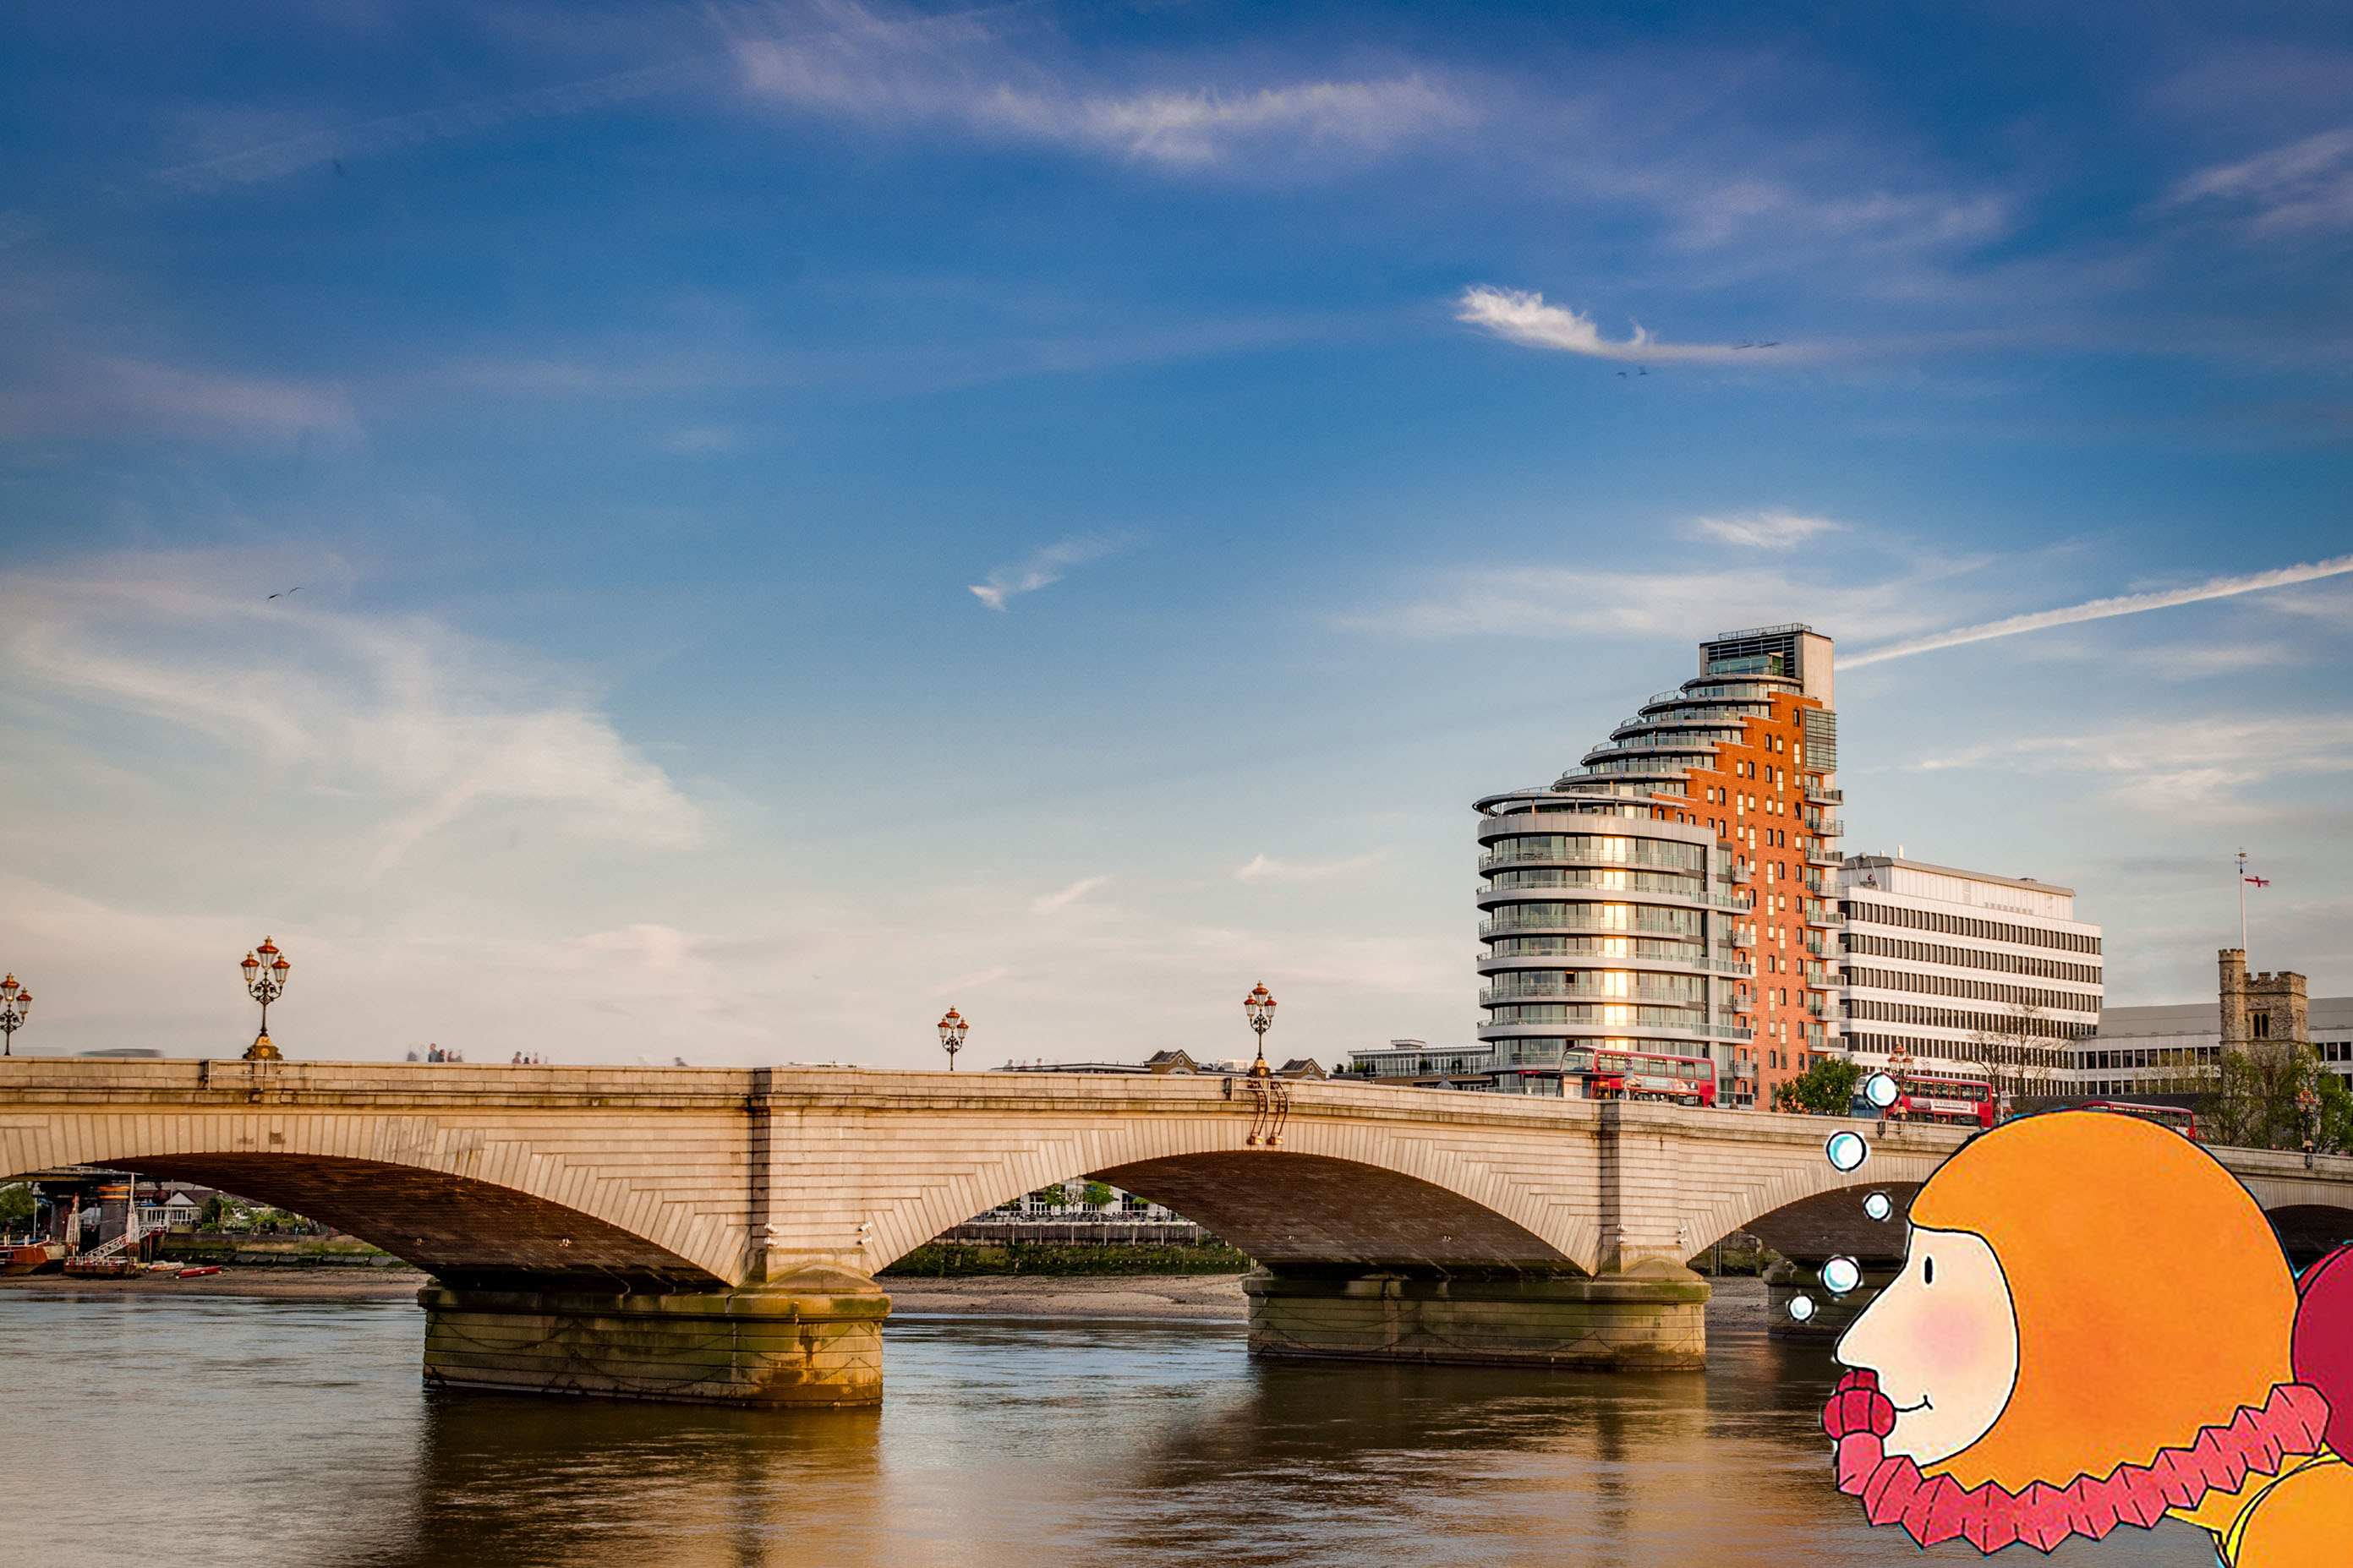 A cartoon scuba diver swimming in the Thames by Putney Bridge